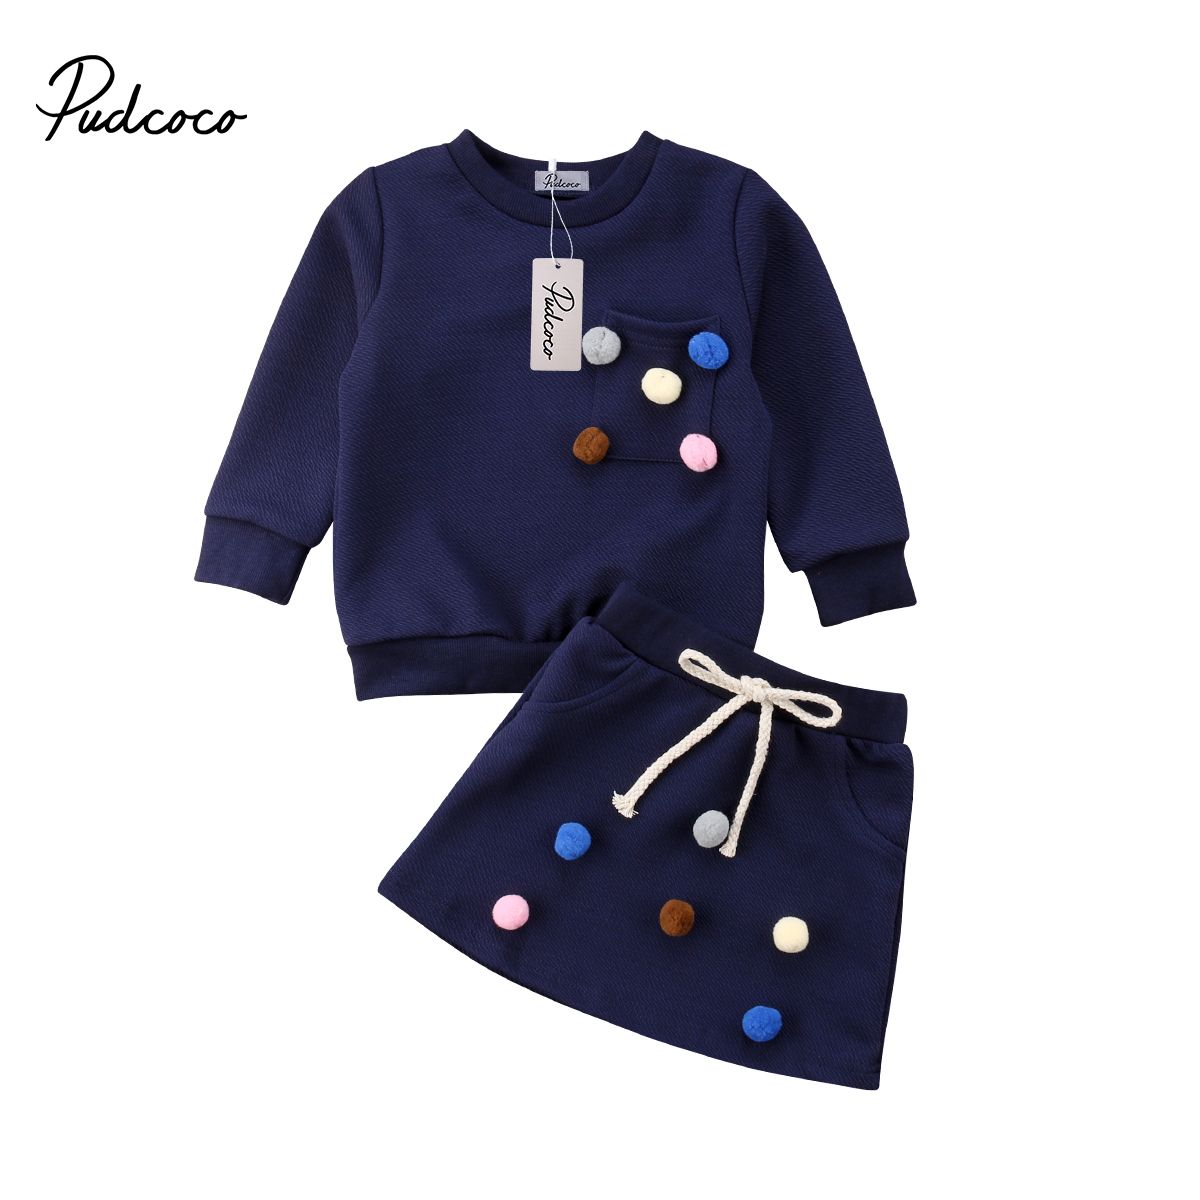 цена на 2pcs Newborn Baby Girls Clothes Set Outfits Long Sleeve shirt Hoodie Skirts Fuzzy Ball Winter 2018 Casual Cute Warm Fashion